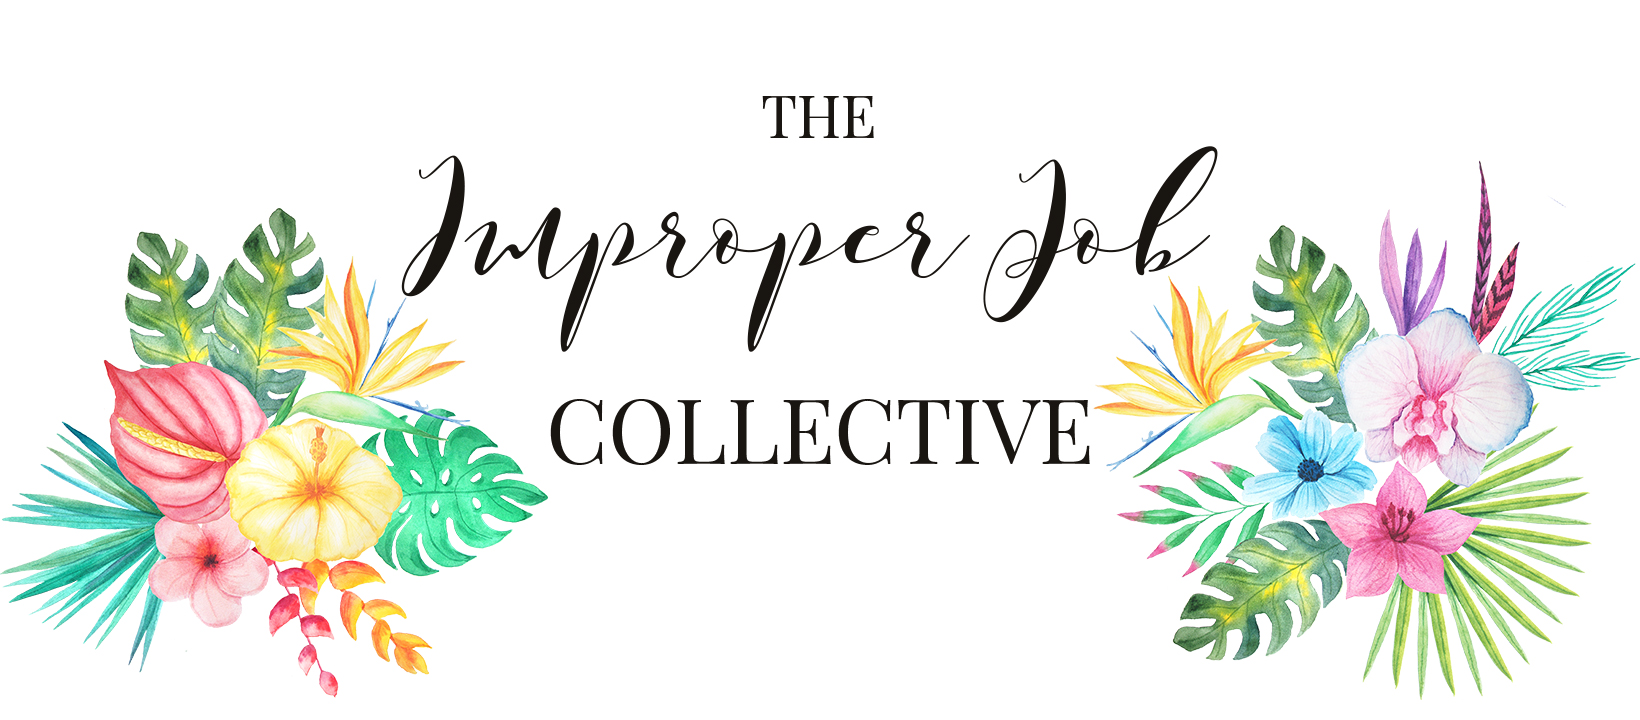 The Improper Job Collective header, with tropical flowers either side of the words